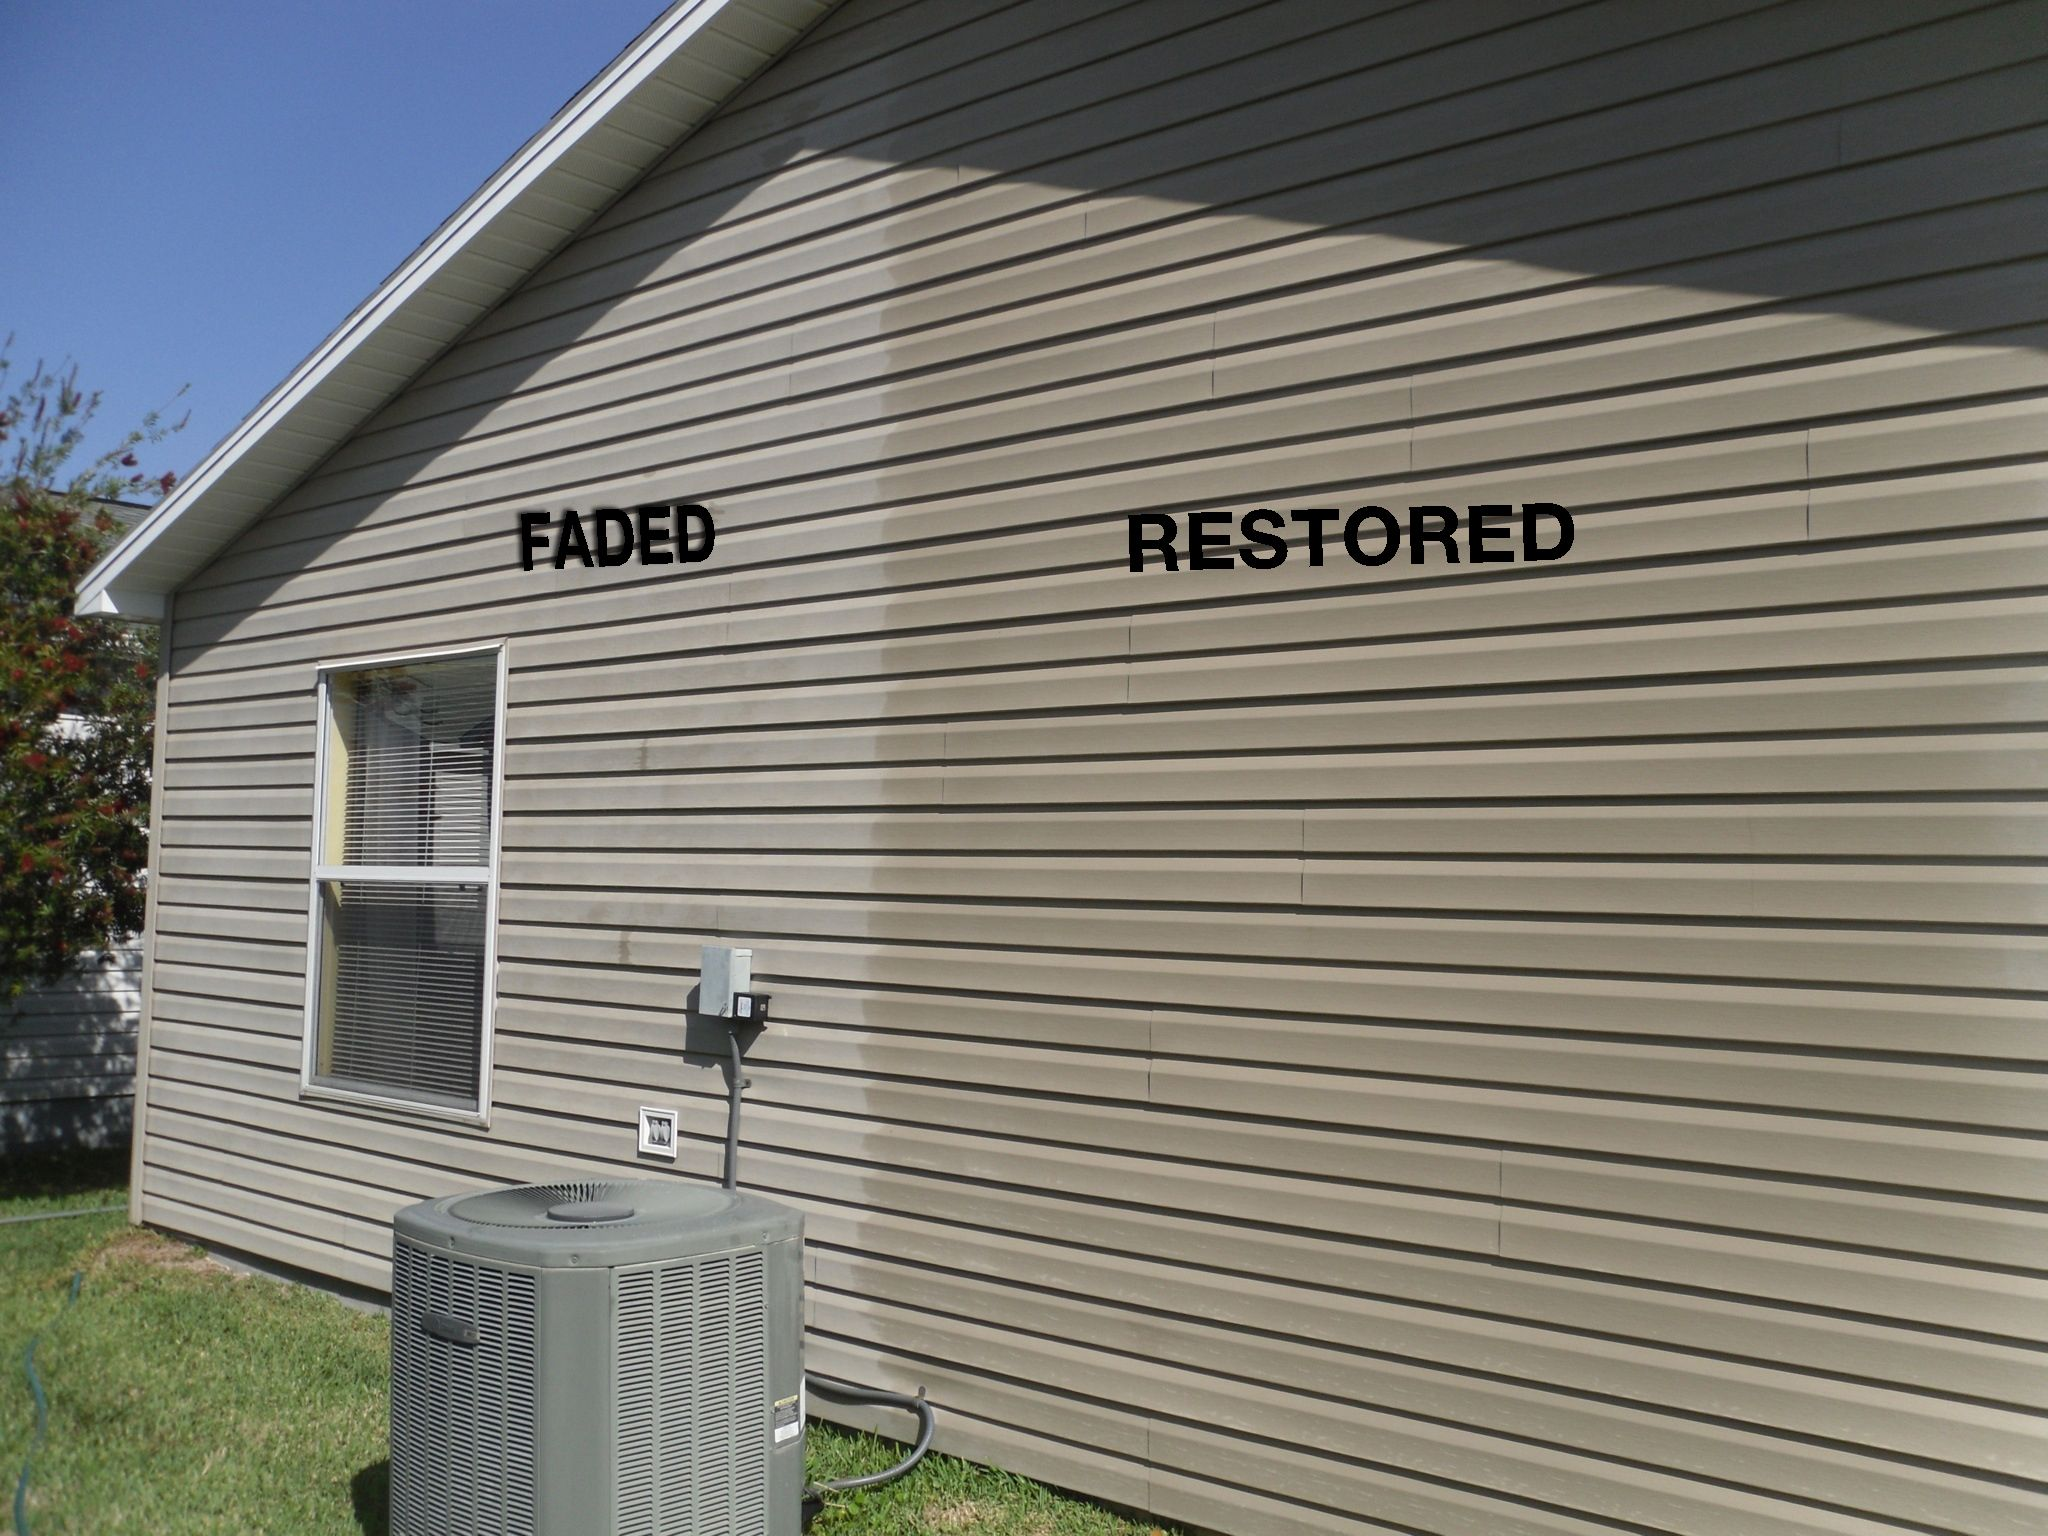 How To Restore And Clean Your Faded Vinyl Siding Short Guide Vinyl Siding Cleaning Vinyl Siding Painting Vinyl Siding